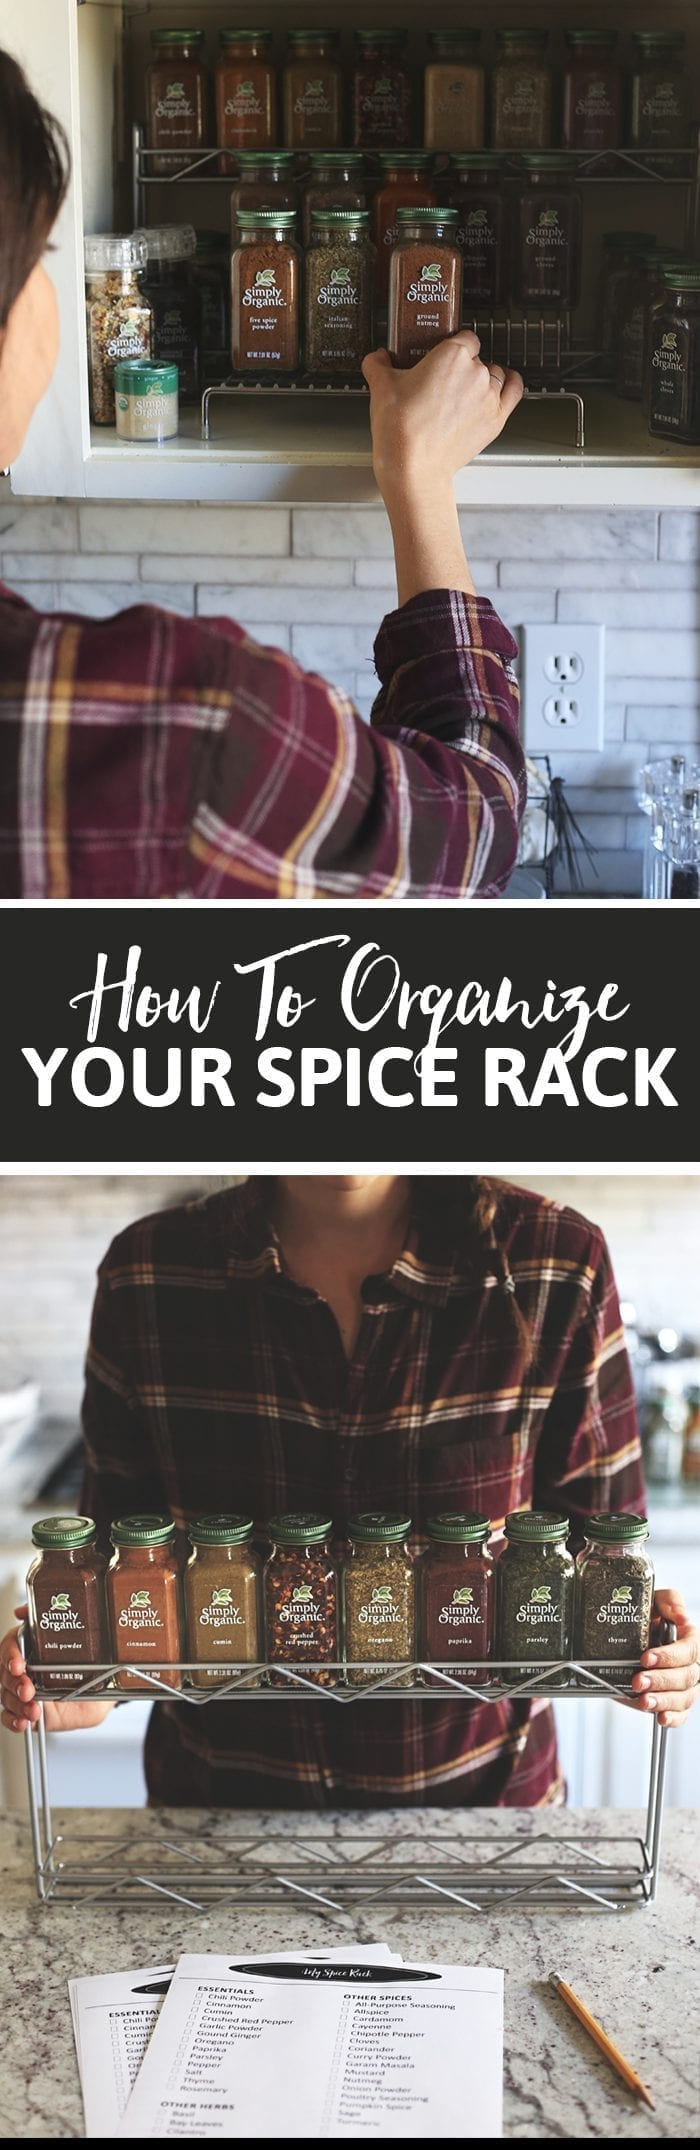 It's easy to get overwhelmed with spices and lose sight of the ones you really need. This post will walk you through which spices are essential, which ones are nice to have and how to keep things organized so you don't get overwhelmed!